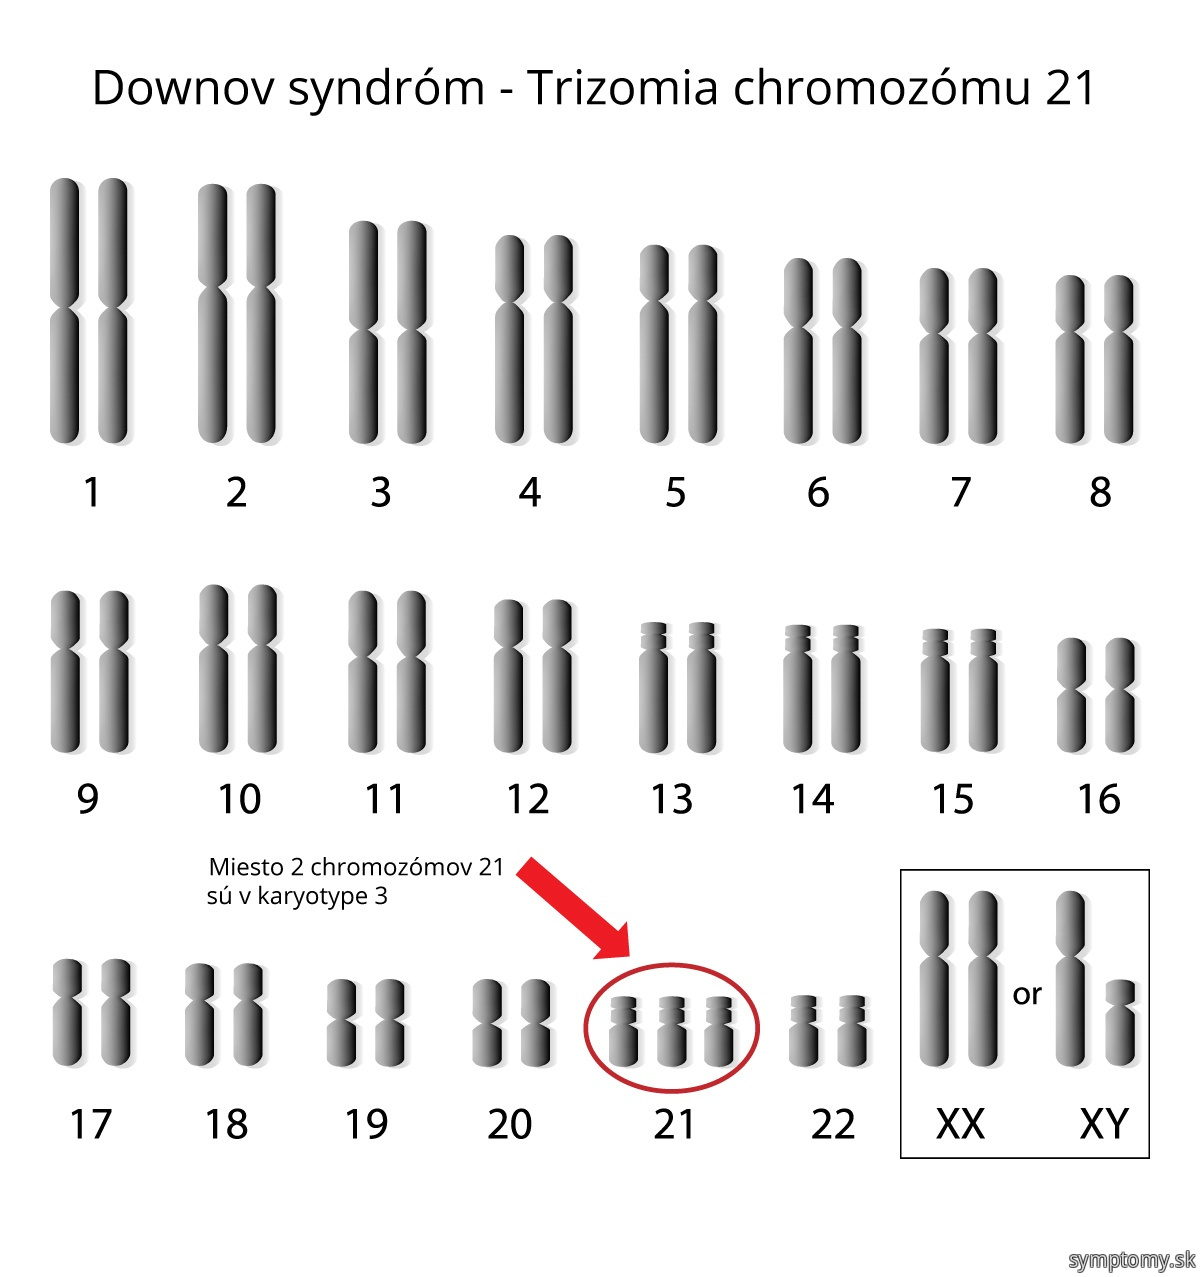 the down syndrome analysis of the disease symptoms and what we can do about it Down syndrome is a genetic condition caused by extra genes from the 21st chromosome it results in certain characteristics, including some degree of cognitive disability and other developmental delays.